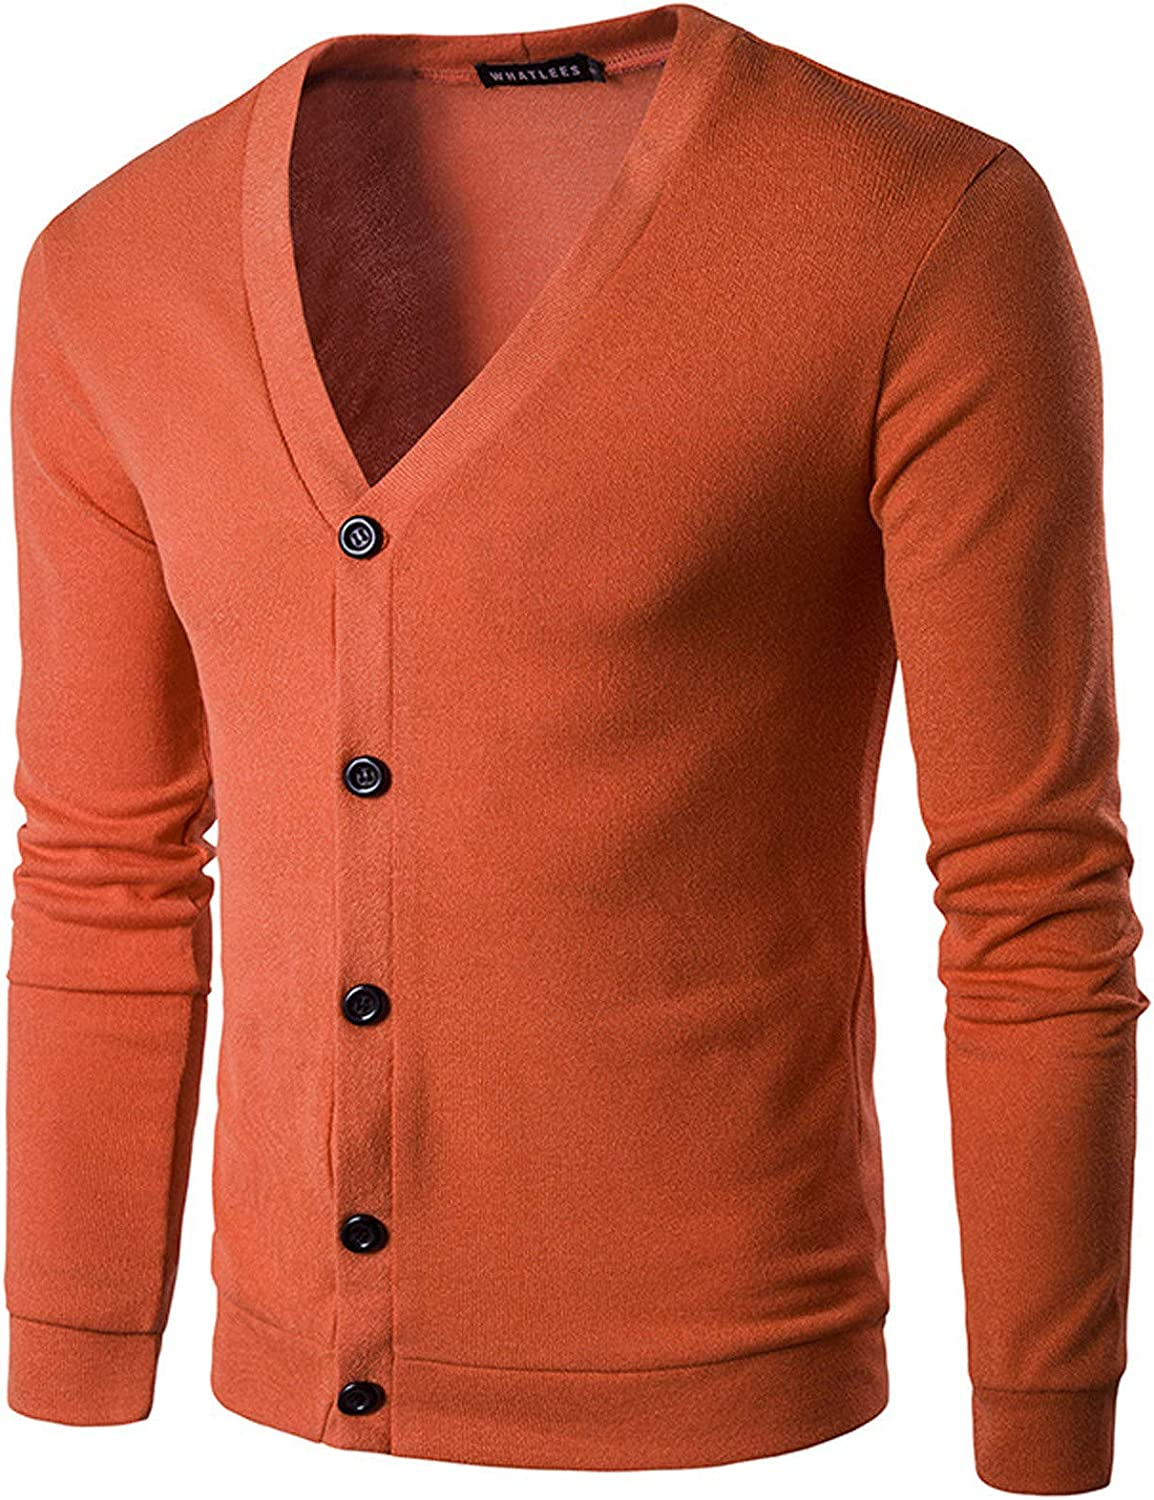 Men's Cashmere Wool Blended Cardigan Solid Color Sweater Relax Fit V Neck Knitted Button Down Cardigan with Pockets